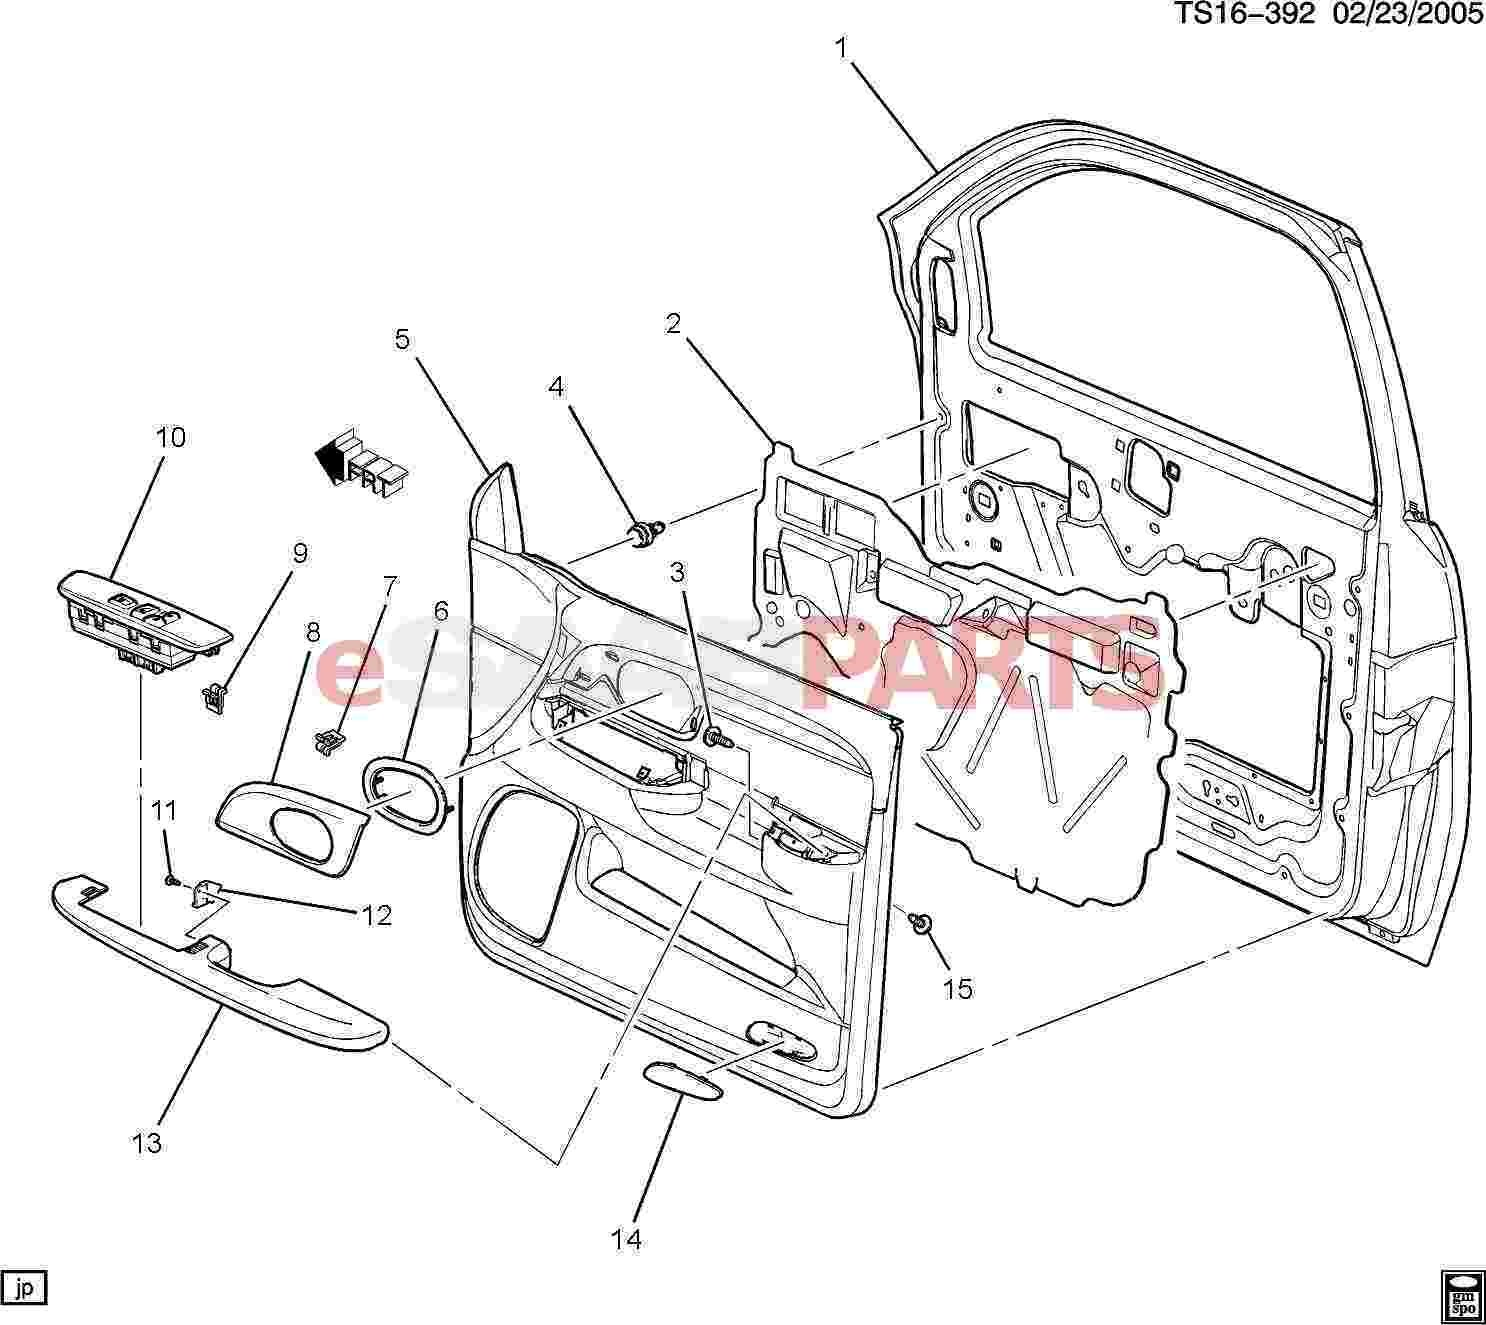 Diagram Of Car Body Parts Esaabparts Saab 9 7x Car Body Internal Parts Door Parts